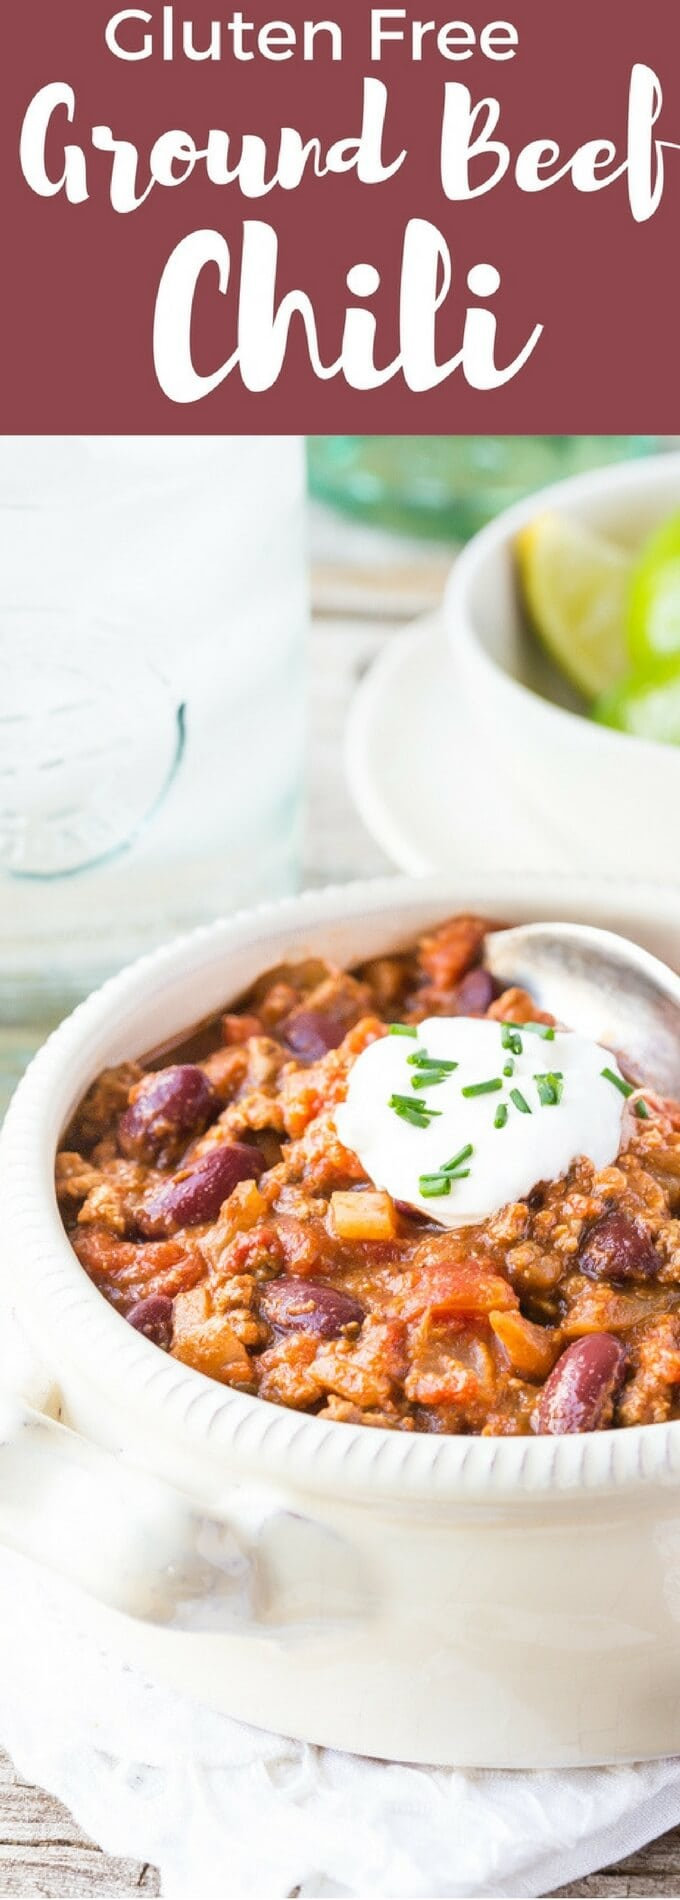 You'll love this Easy Gluten Free Beef Chili recipe! It's perfect comfort food and it so easy to cook. Made with ground beef it's a quick weeknight meal.